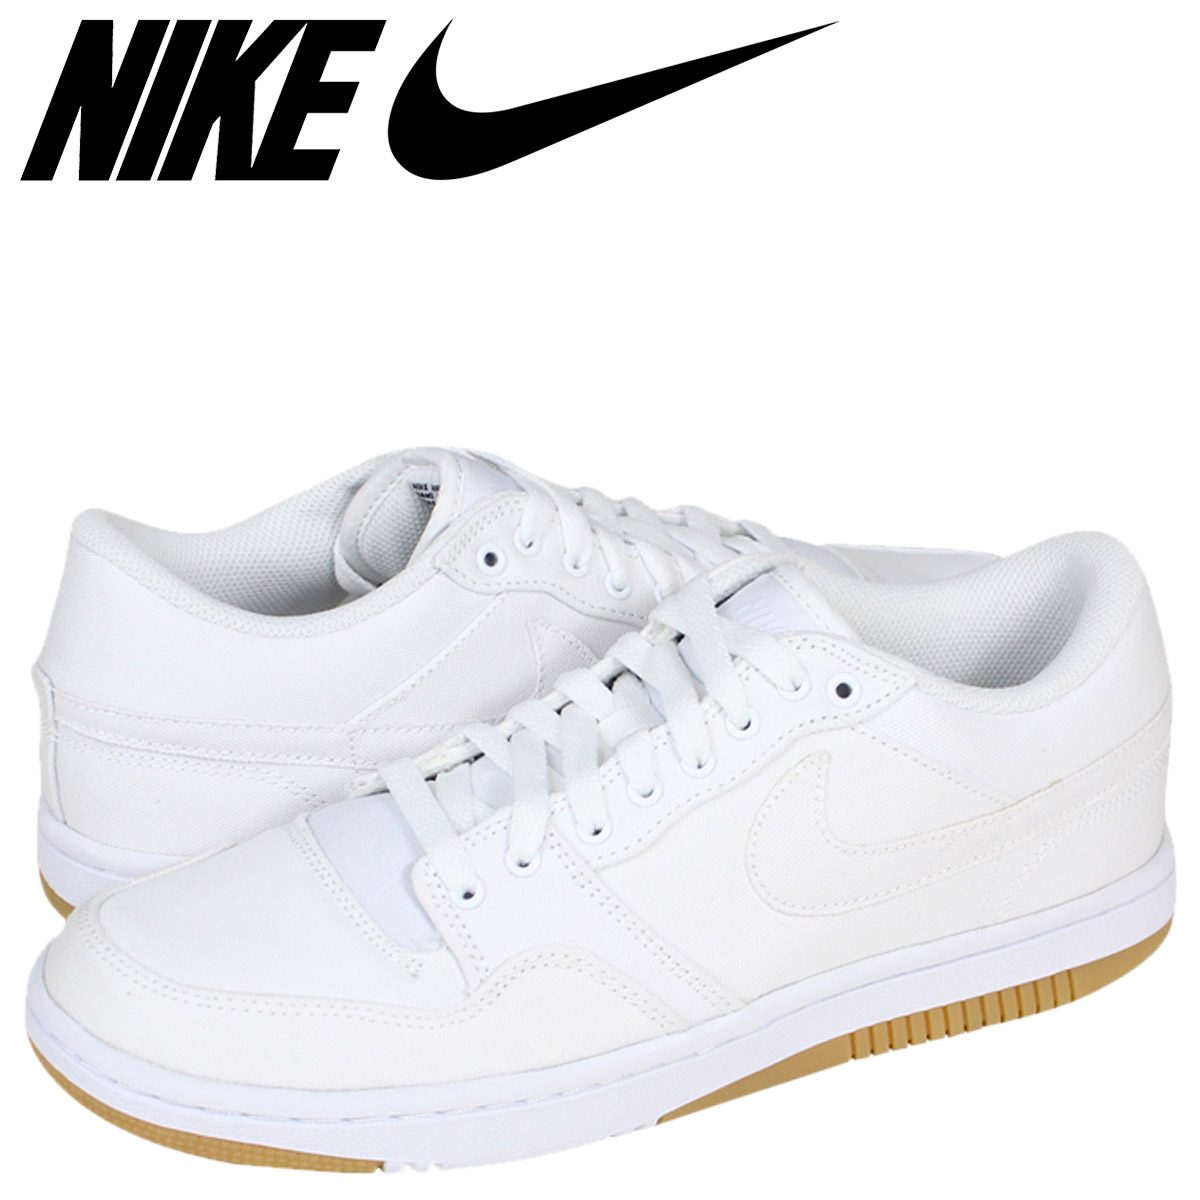 new concept 92eb4 597b1 NIKE Nike Court force sneakers COURT FORCE LOW Court force Lo 313561-119  white mens ...